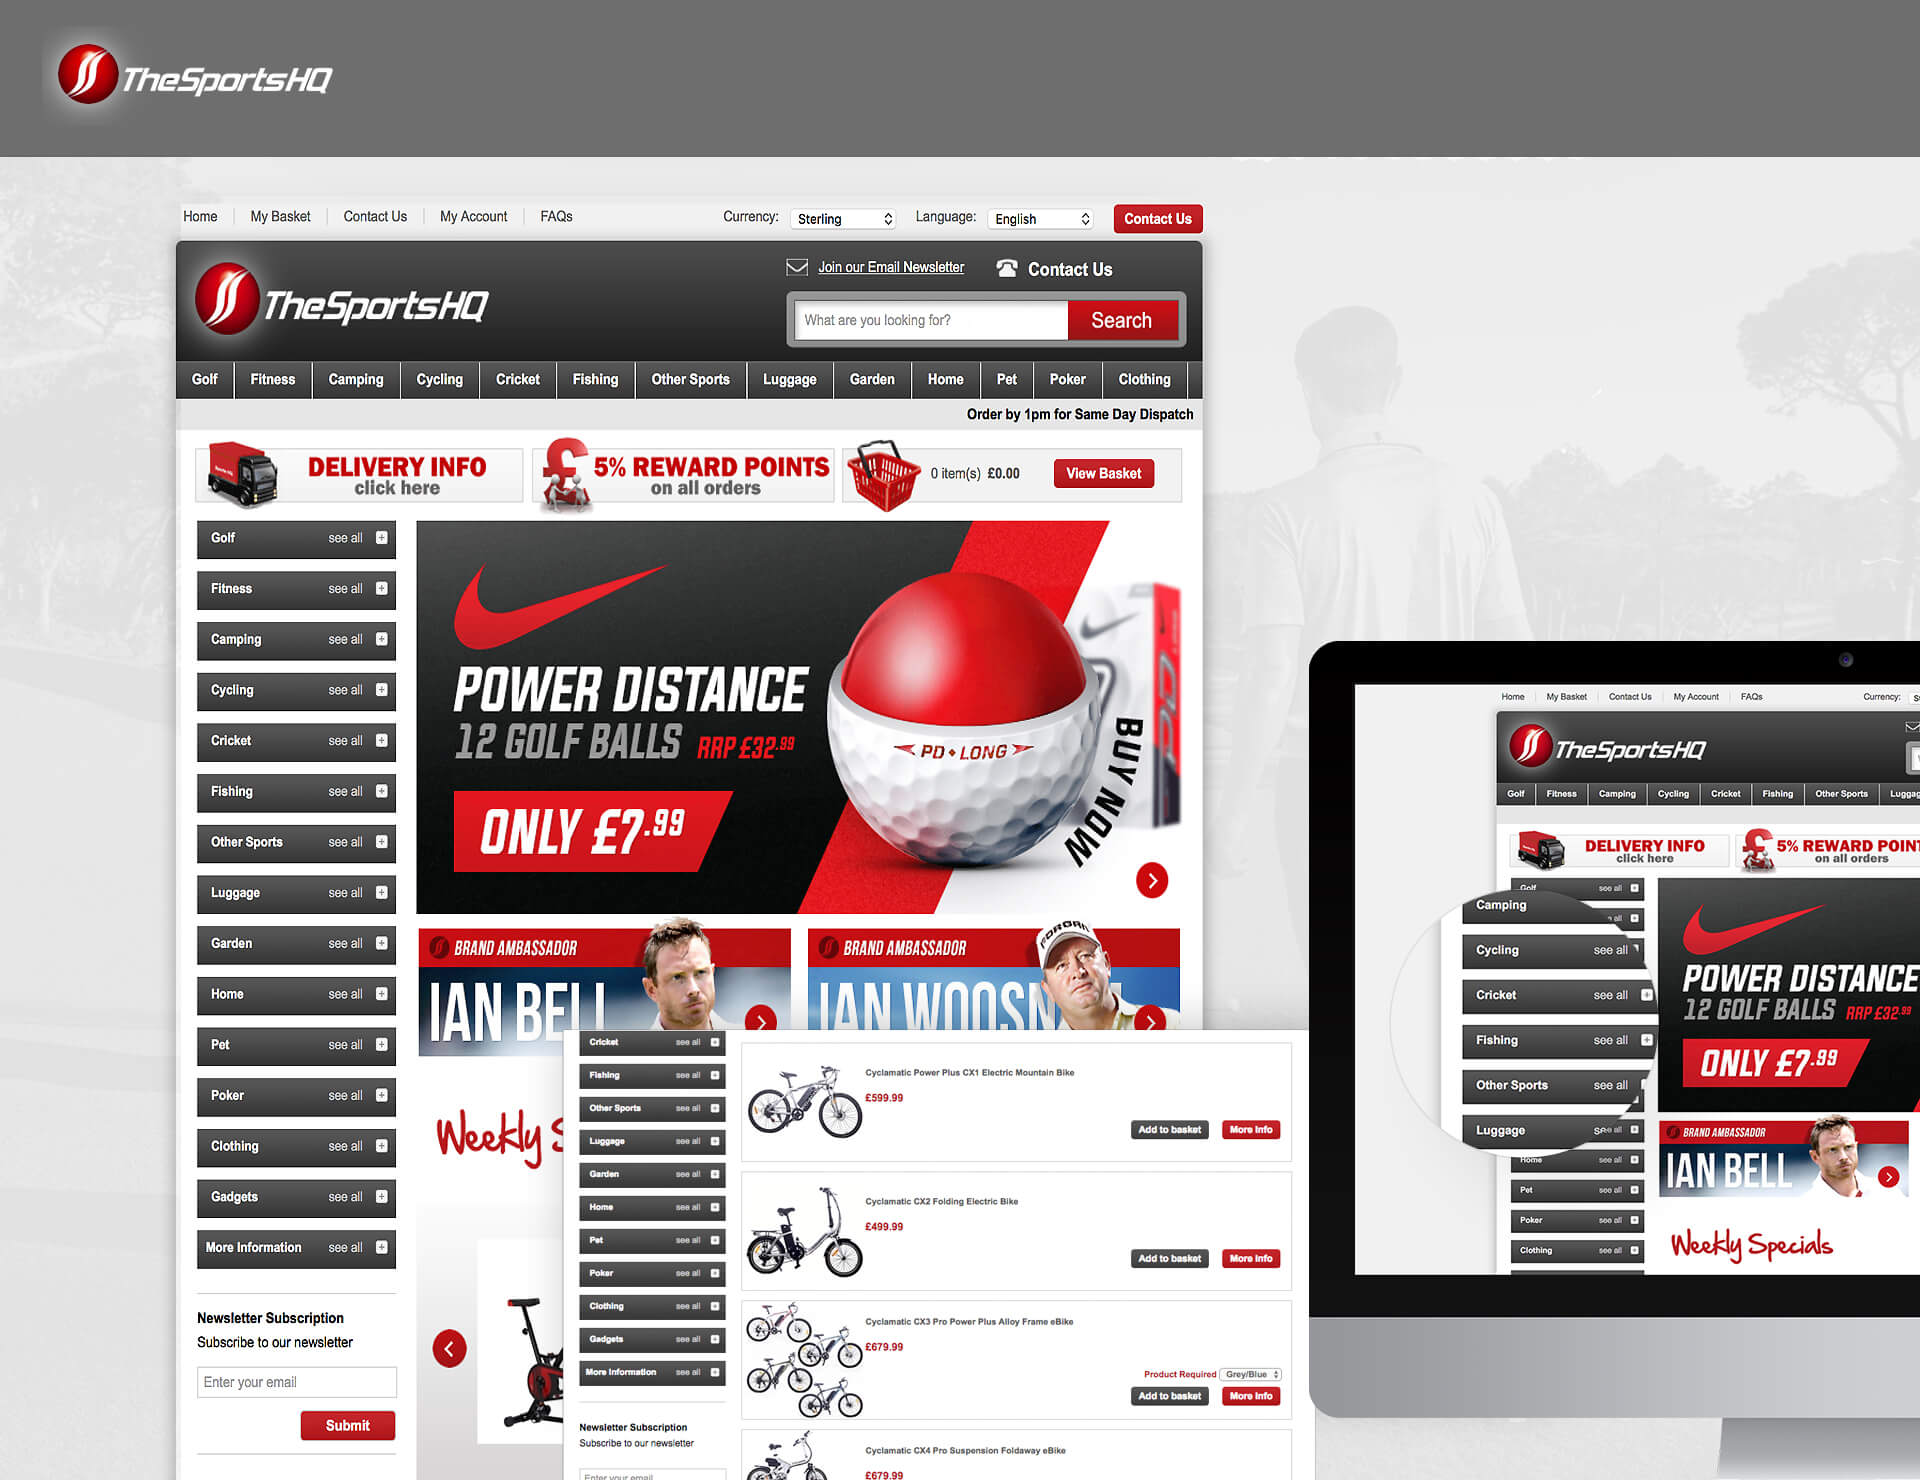 Sports HQ - Website & Sales Order Processing System